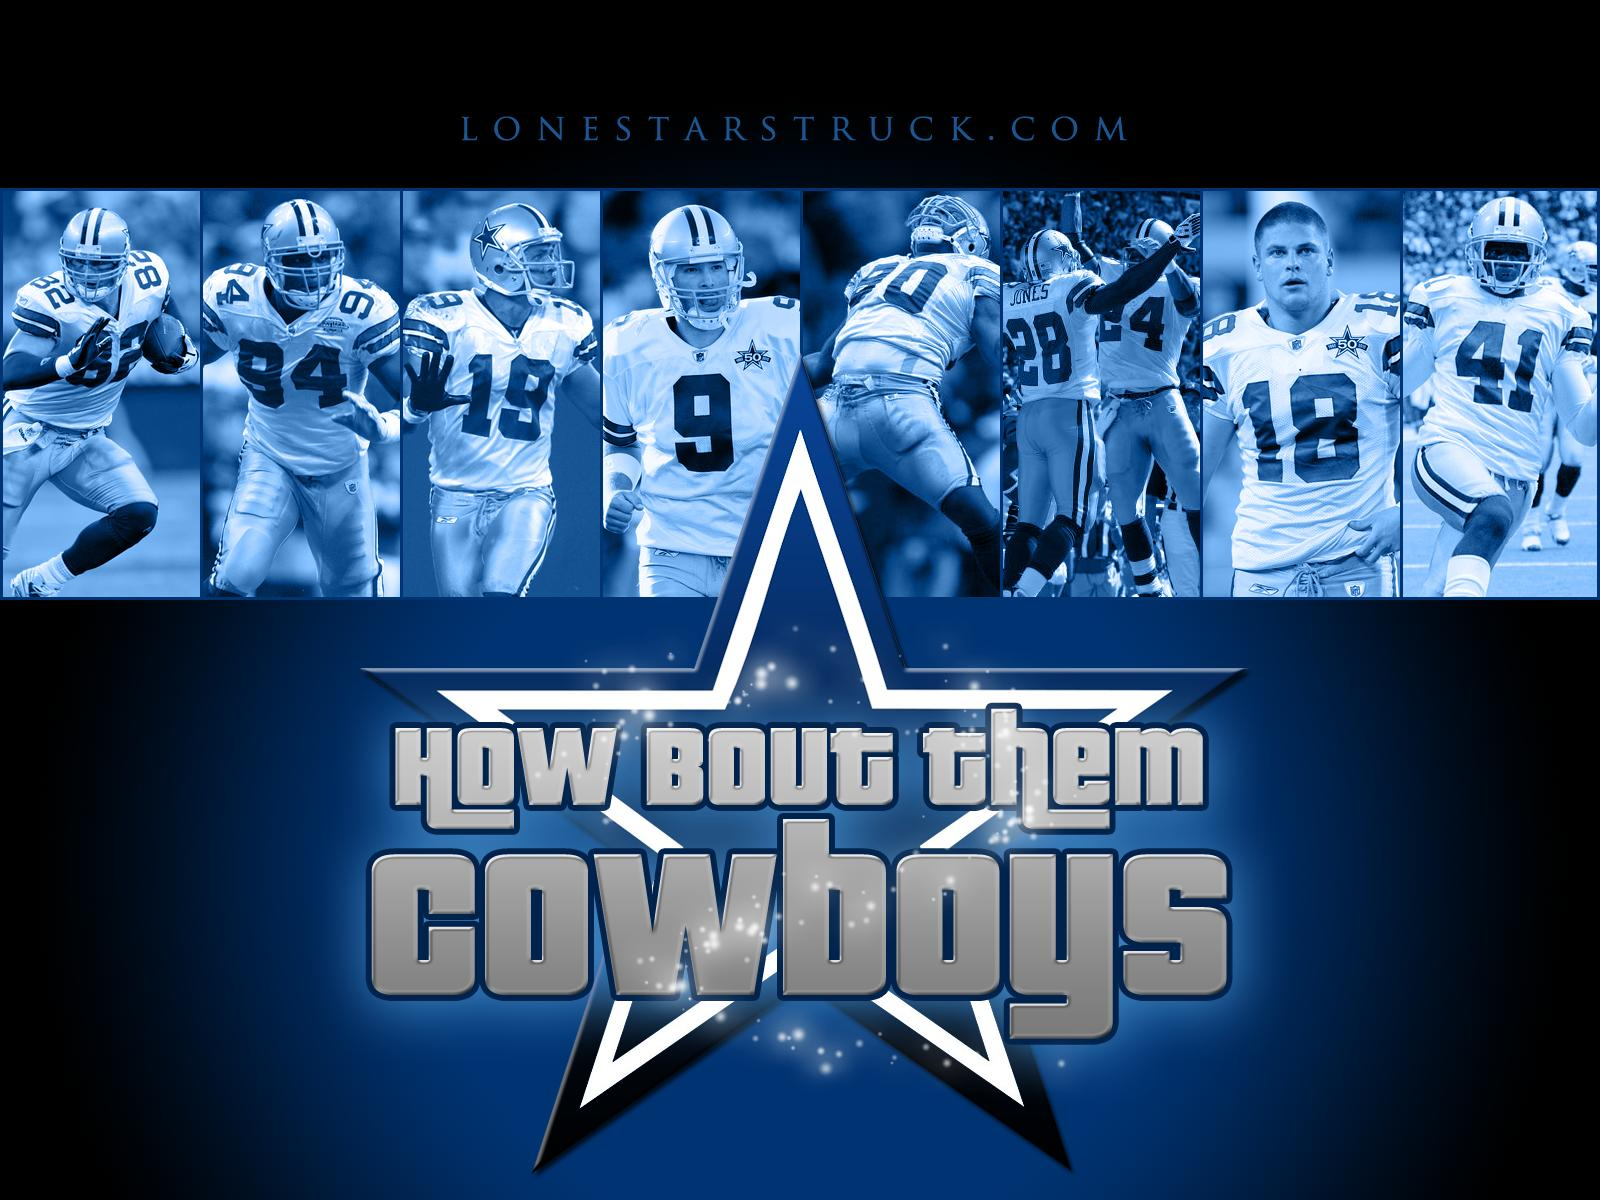 Hope you like this Dallas Cowboys background in high resolution as 1600x1200